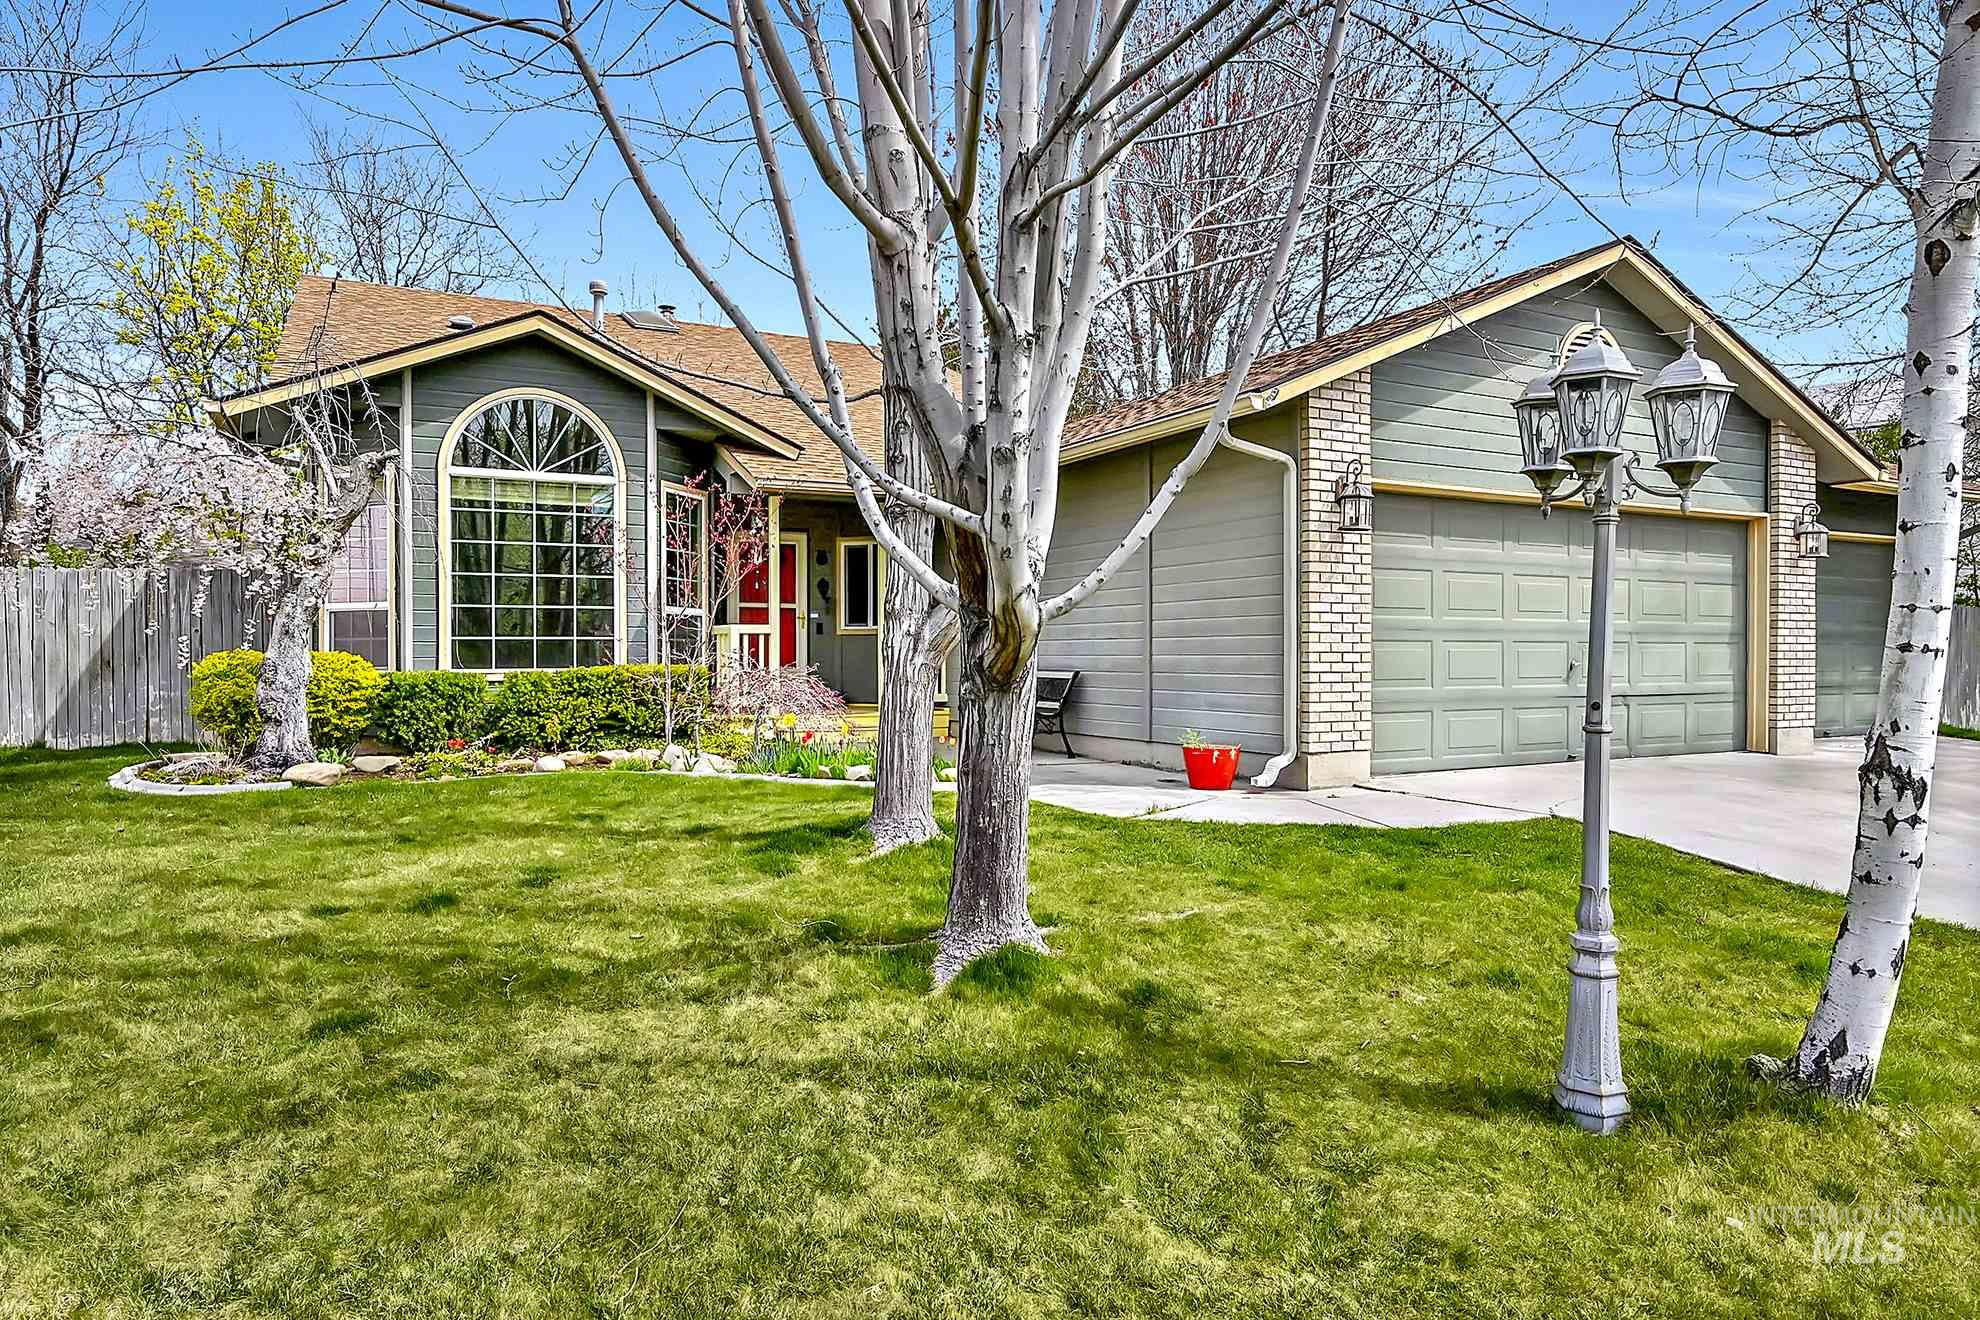 11936 W Tidewater Dr Property Photo - Boise, ID real estate listing